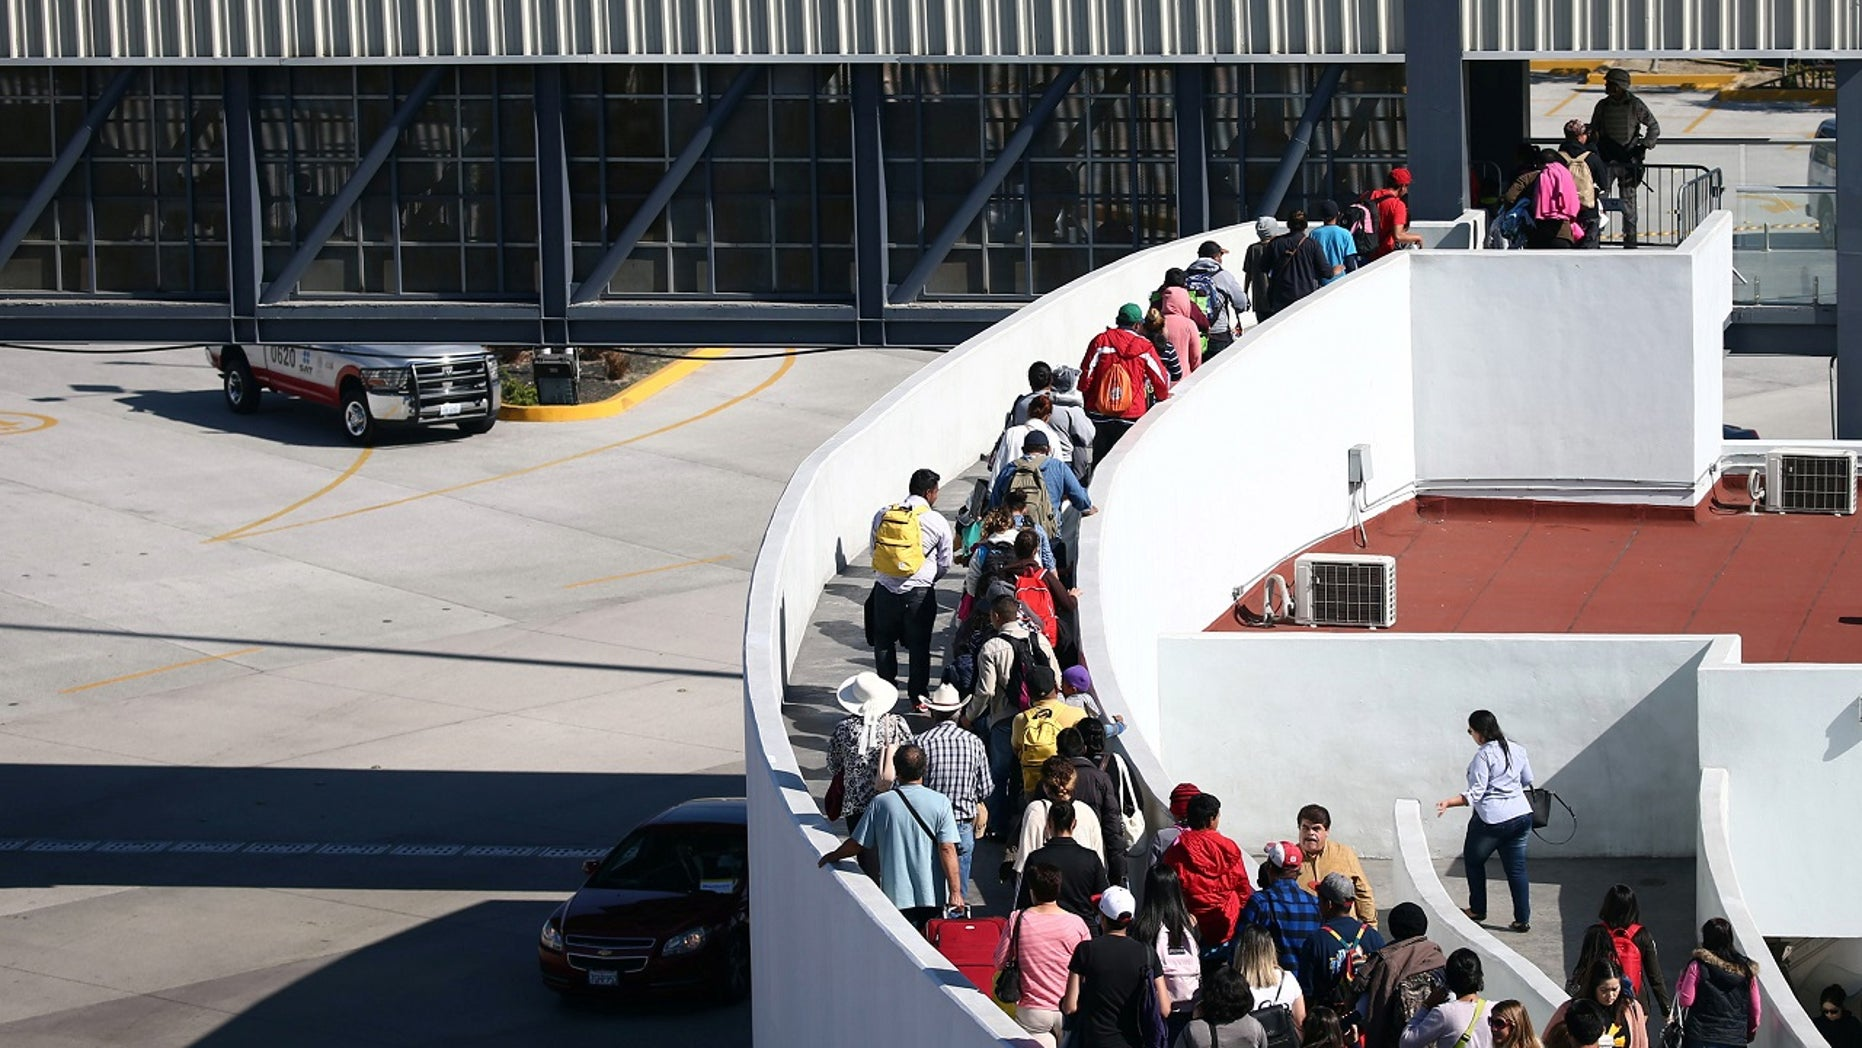 Roughly 70 migrants crossed the border into the United States Friday morning.